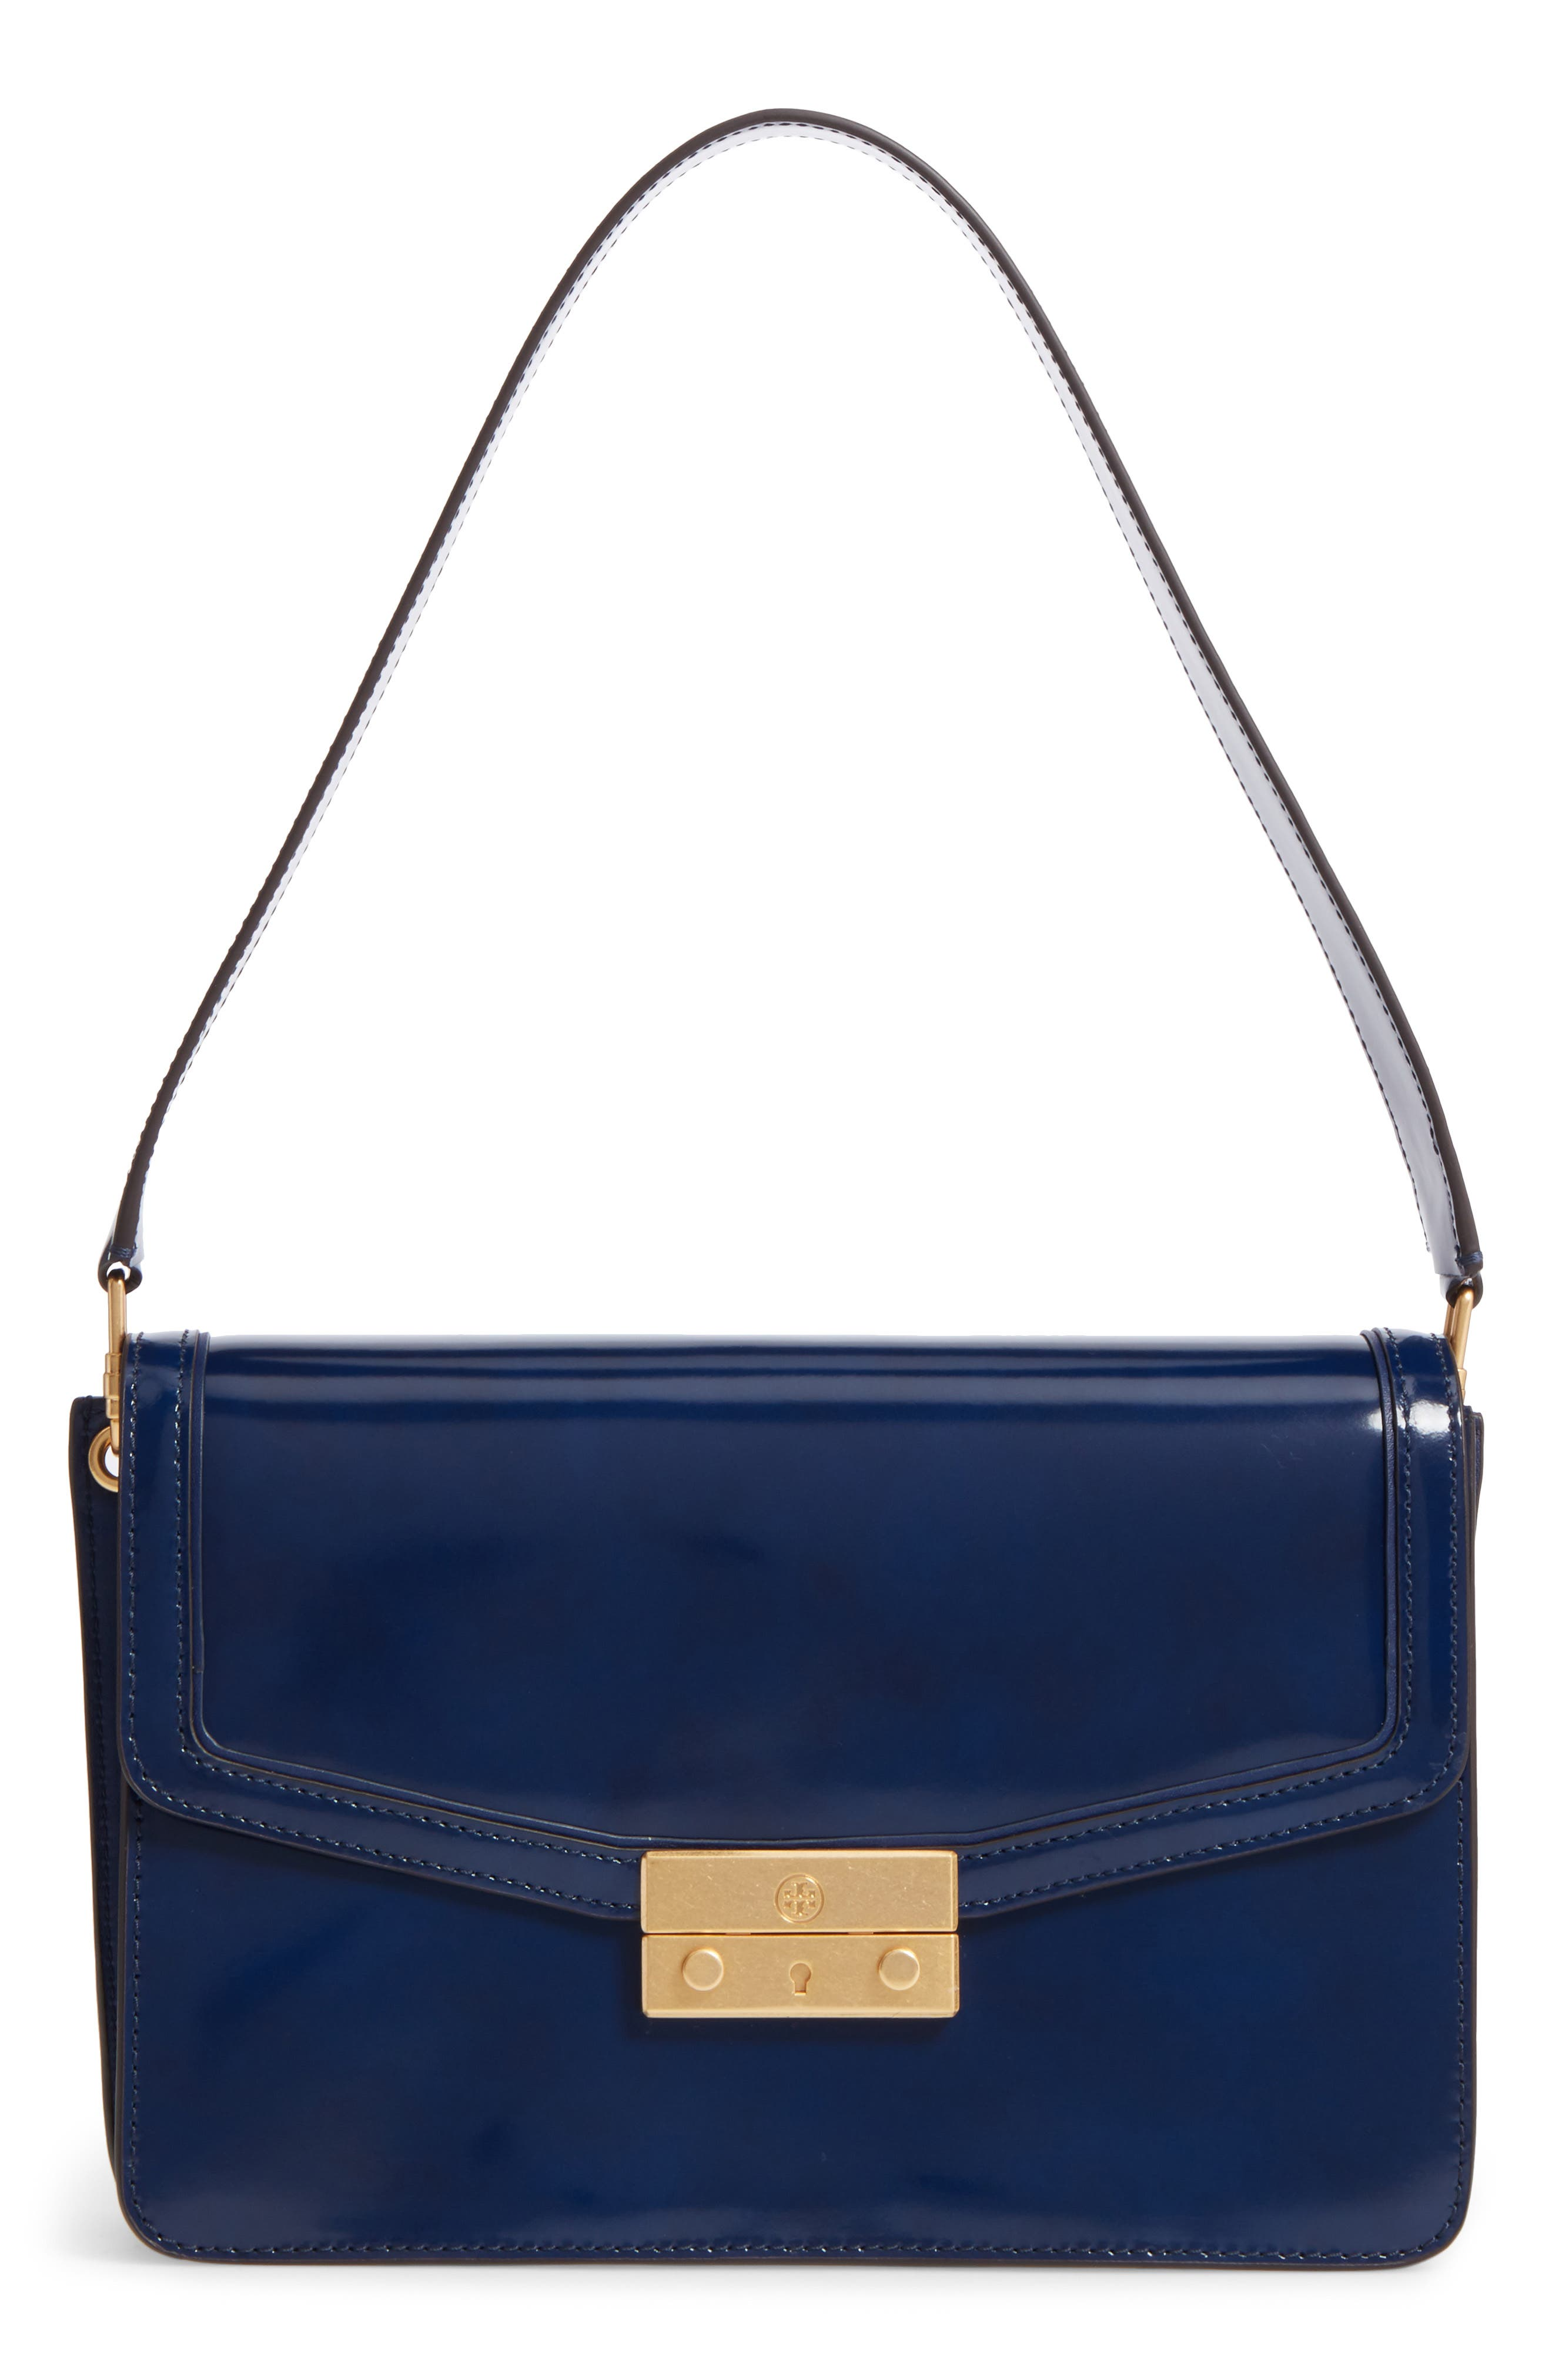 Main Image - Tory Burch Juliette Leather Shoulder Bag